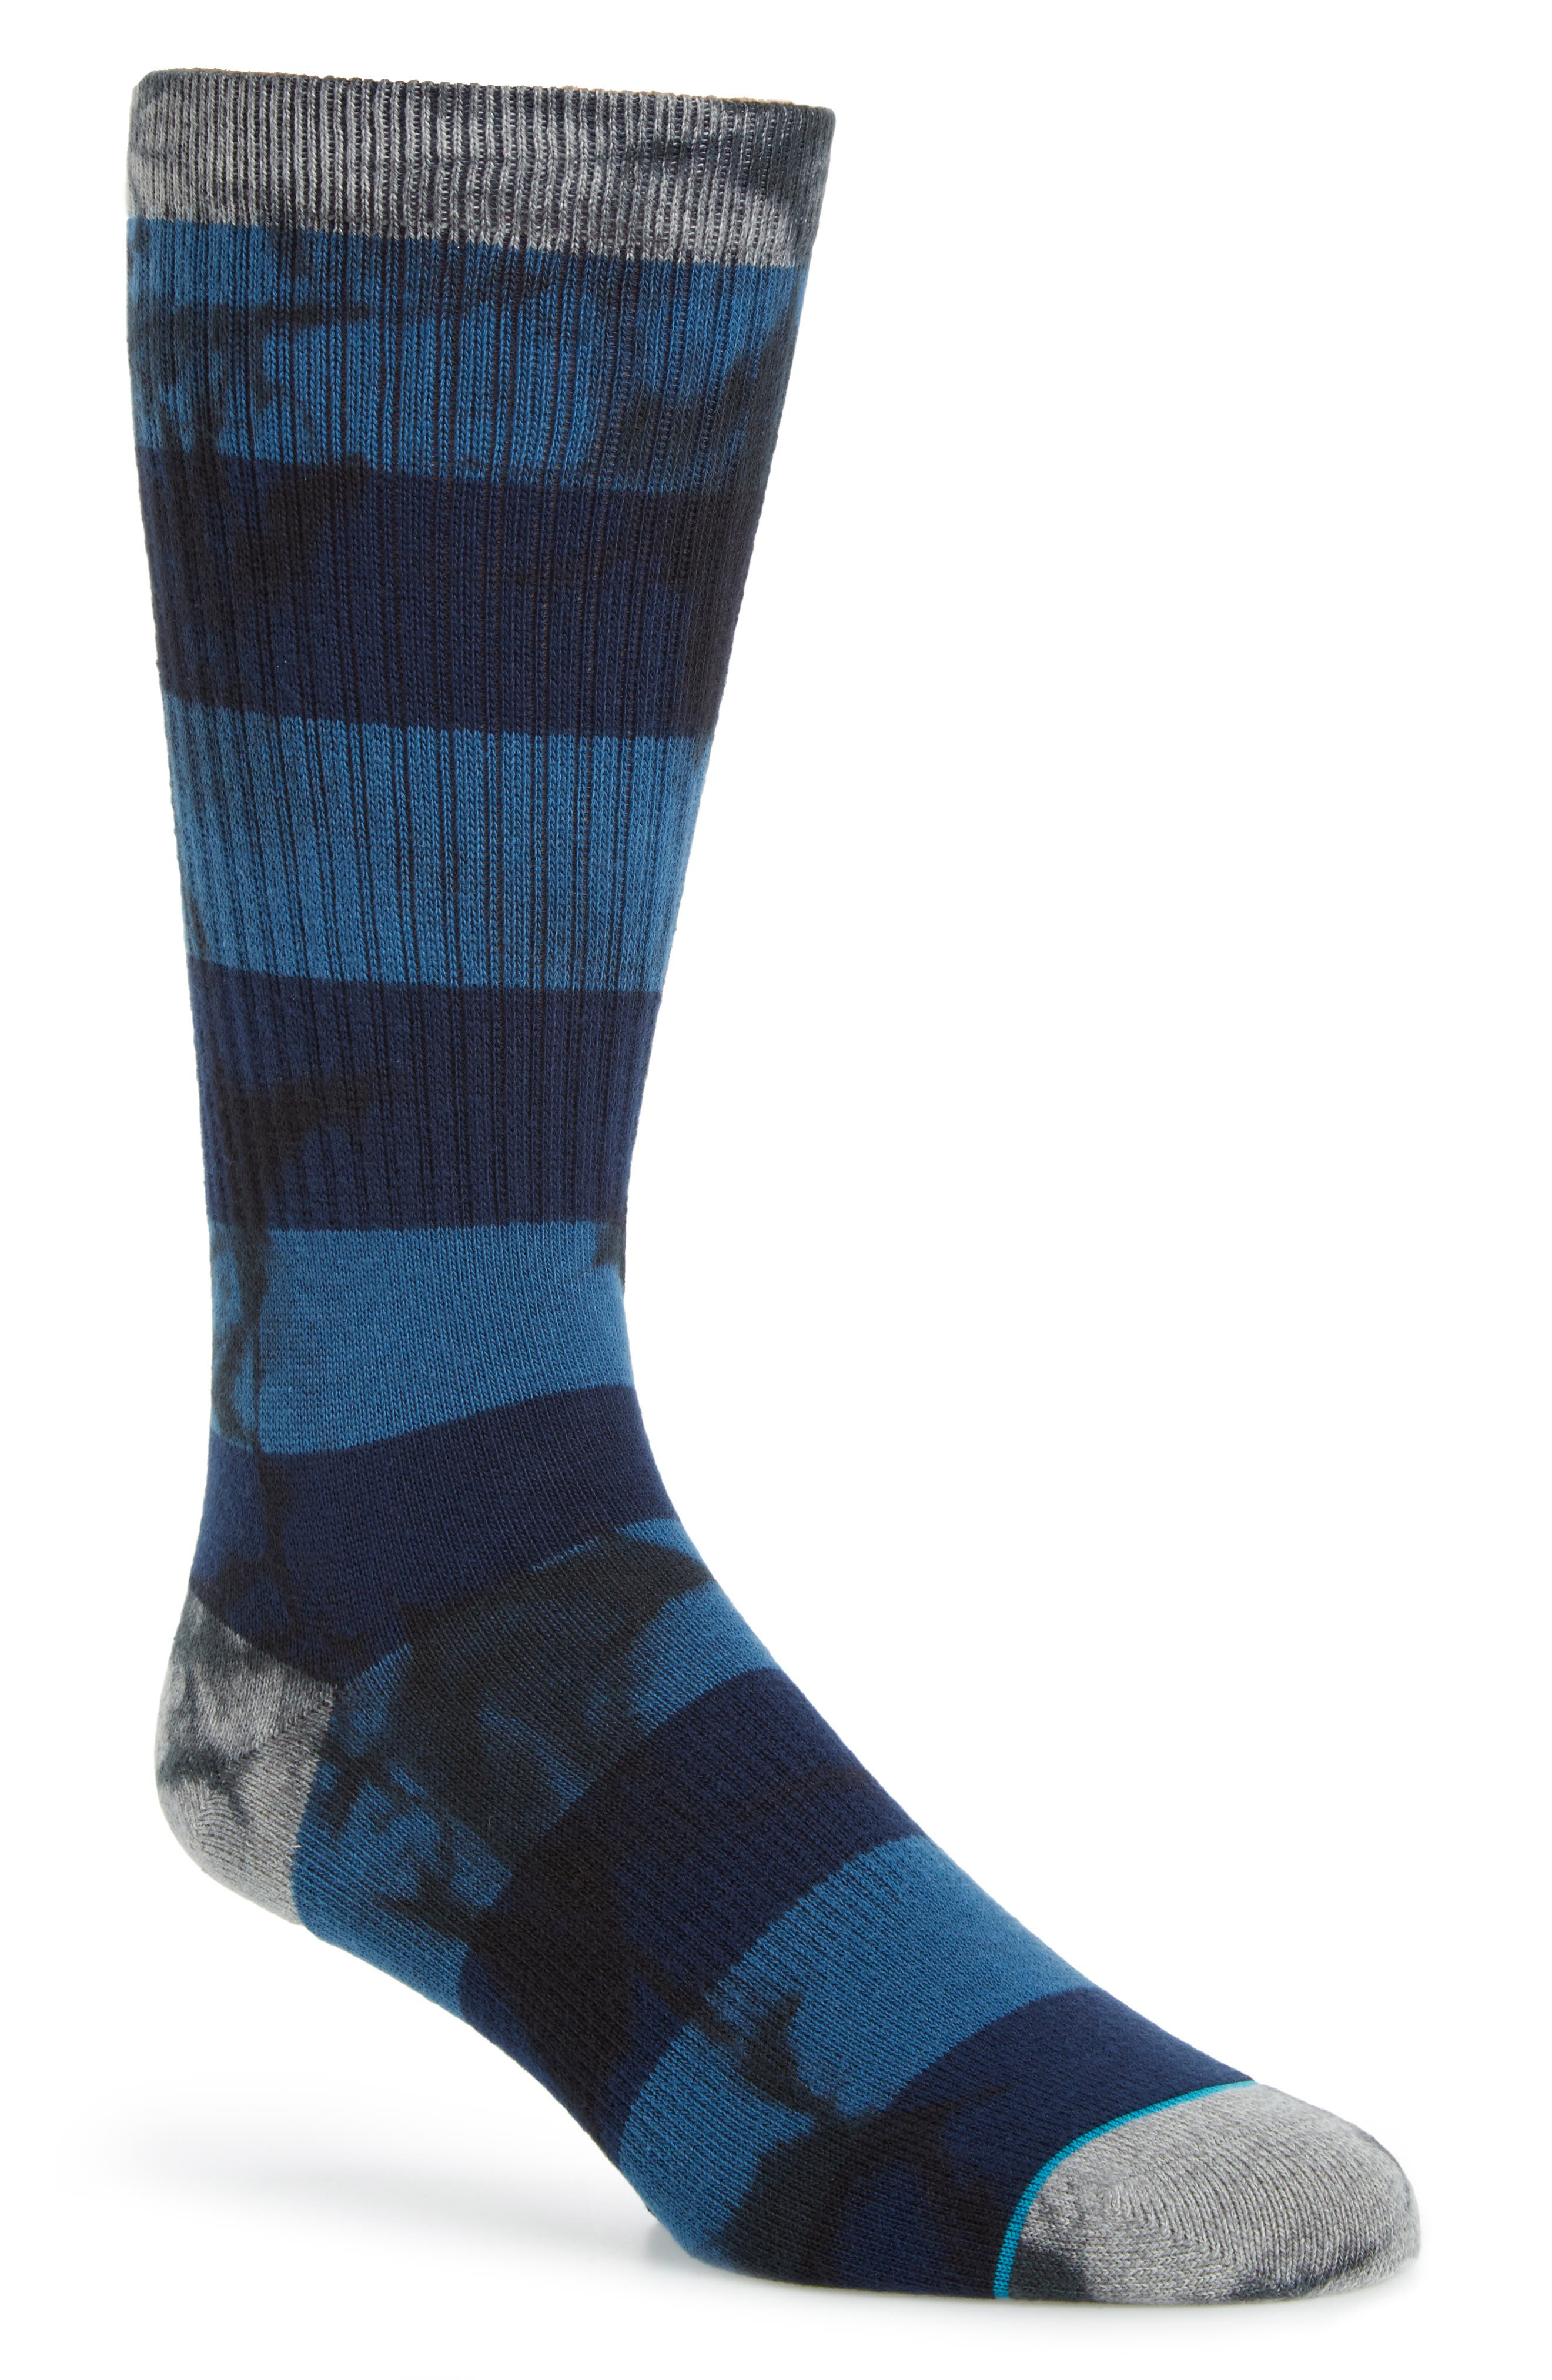 Alternate Image 1 Selected - Stance Wells Classic Crew Socks